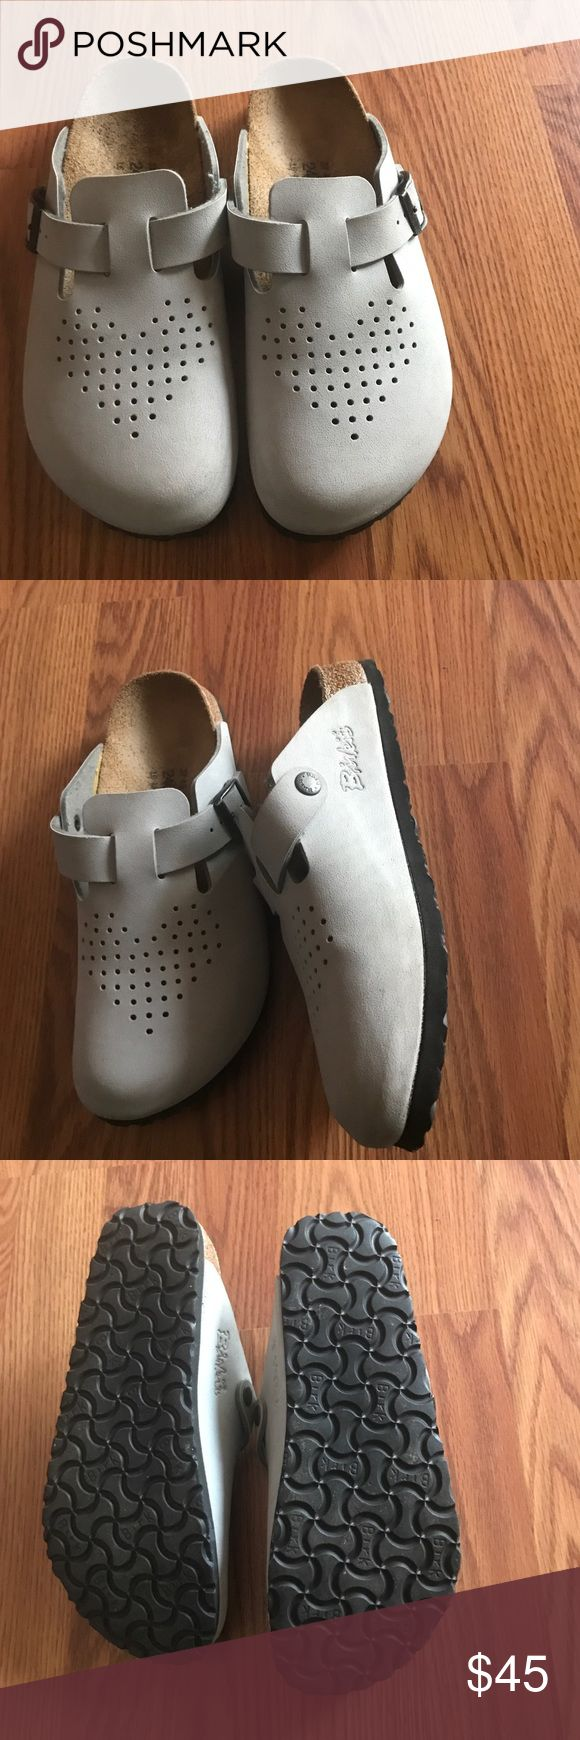 Light grey birkis sandal vegan leather like New Vegan Birkenstock sandal perfect color. Like New used very few times. The sizes is 37 or 240mm it can fit size 6-7 women        Made in Germany 🇩🇪          If you're unsure if it will fit you I measure the sandal from top to bottom it measures 10' hope that helps Birkenstock Shoes Sandals